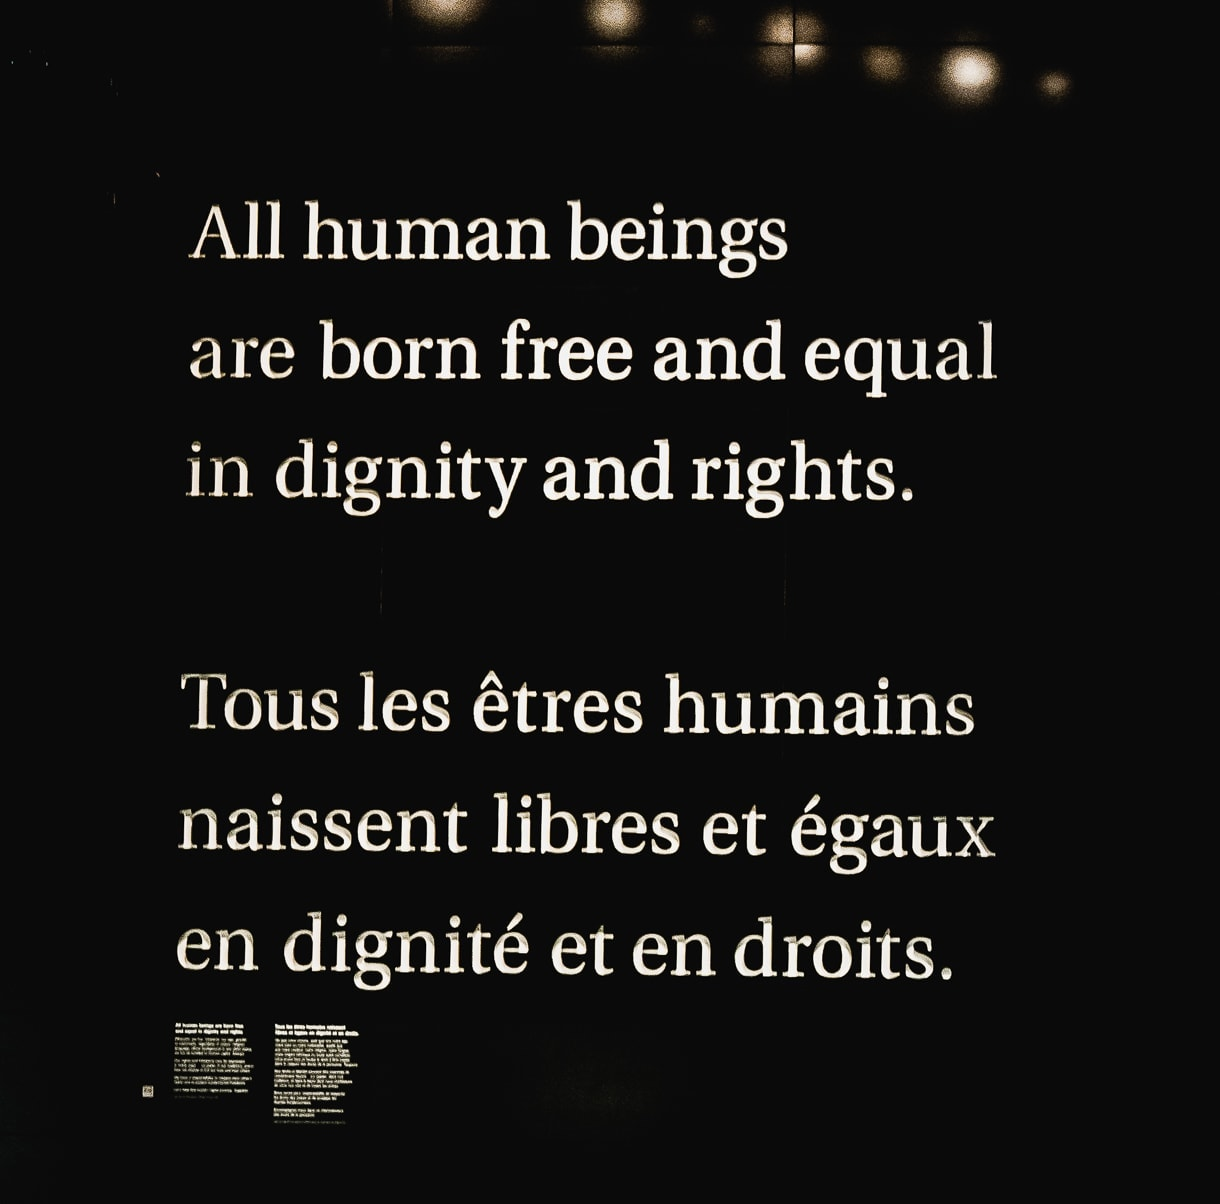 Human Rights Museum of Canda: All human beings are born free